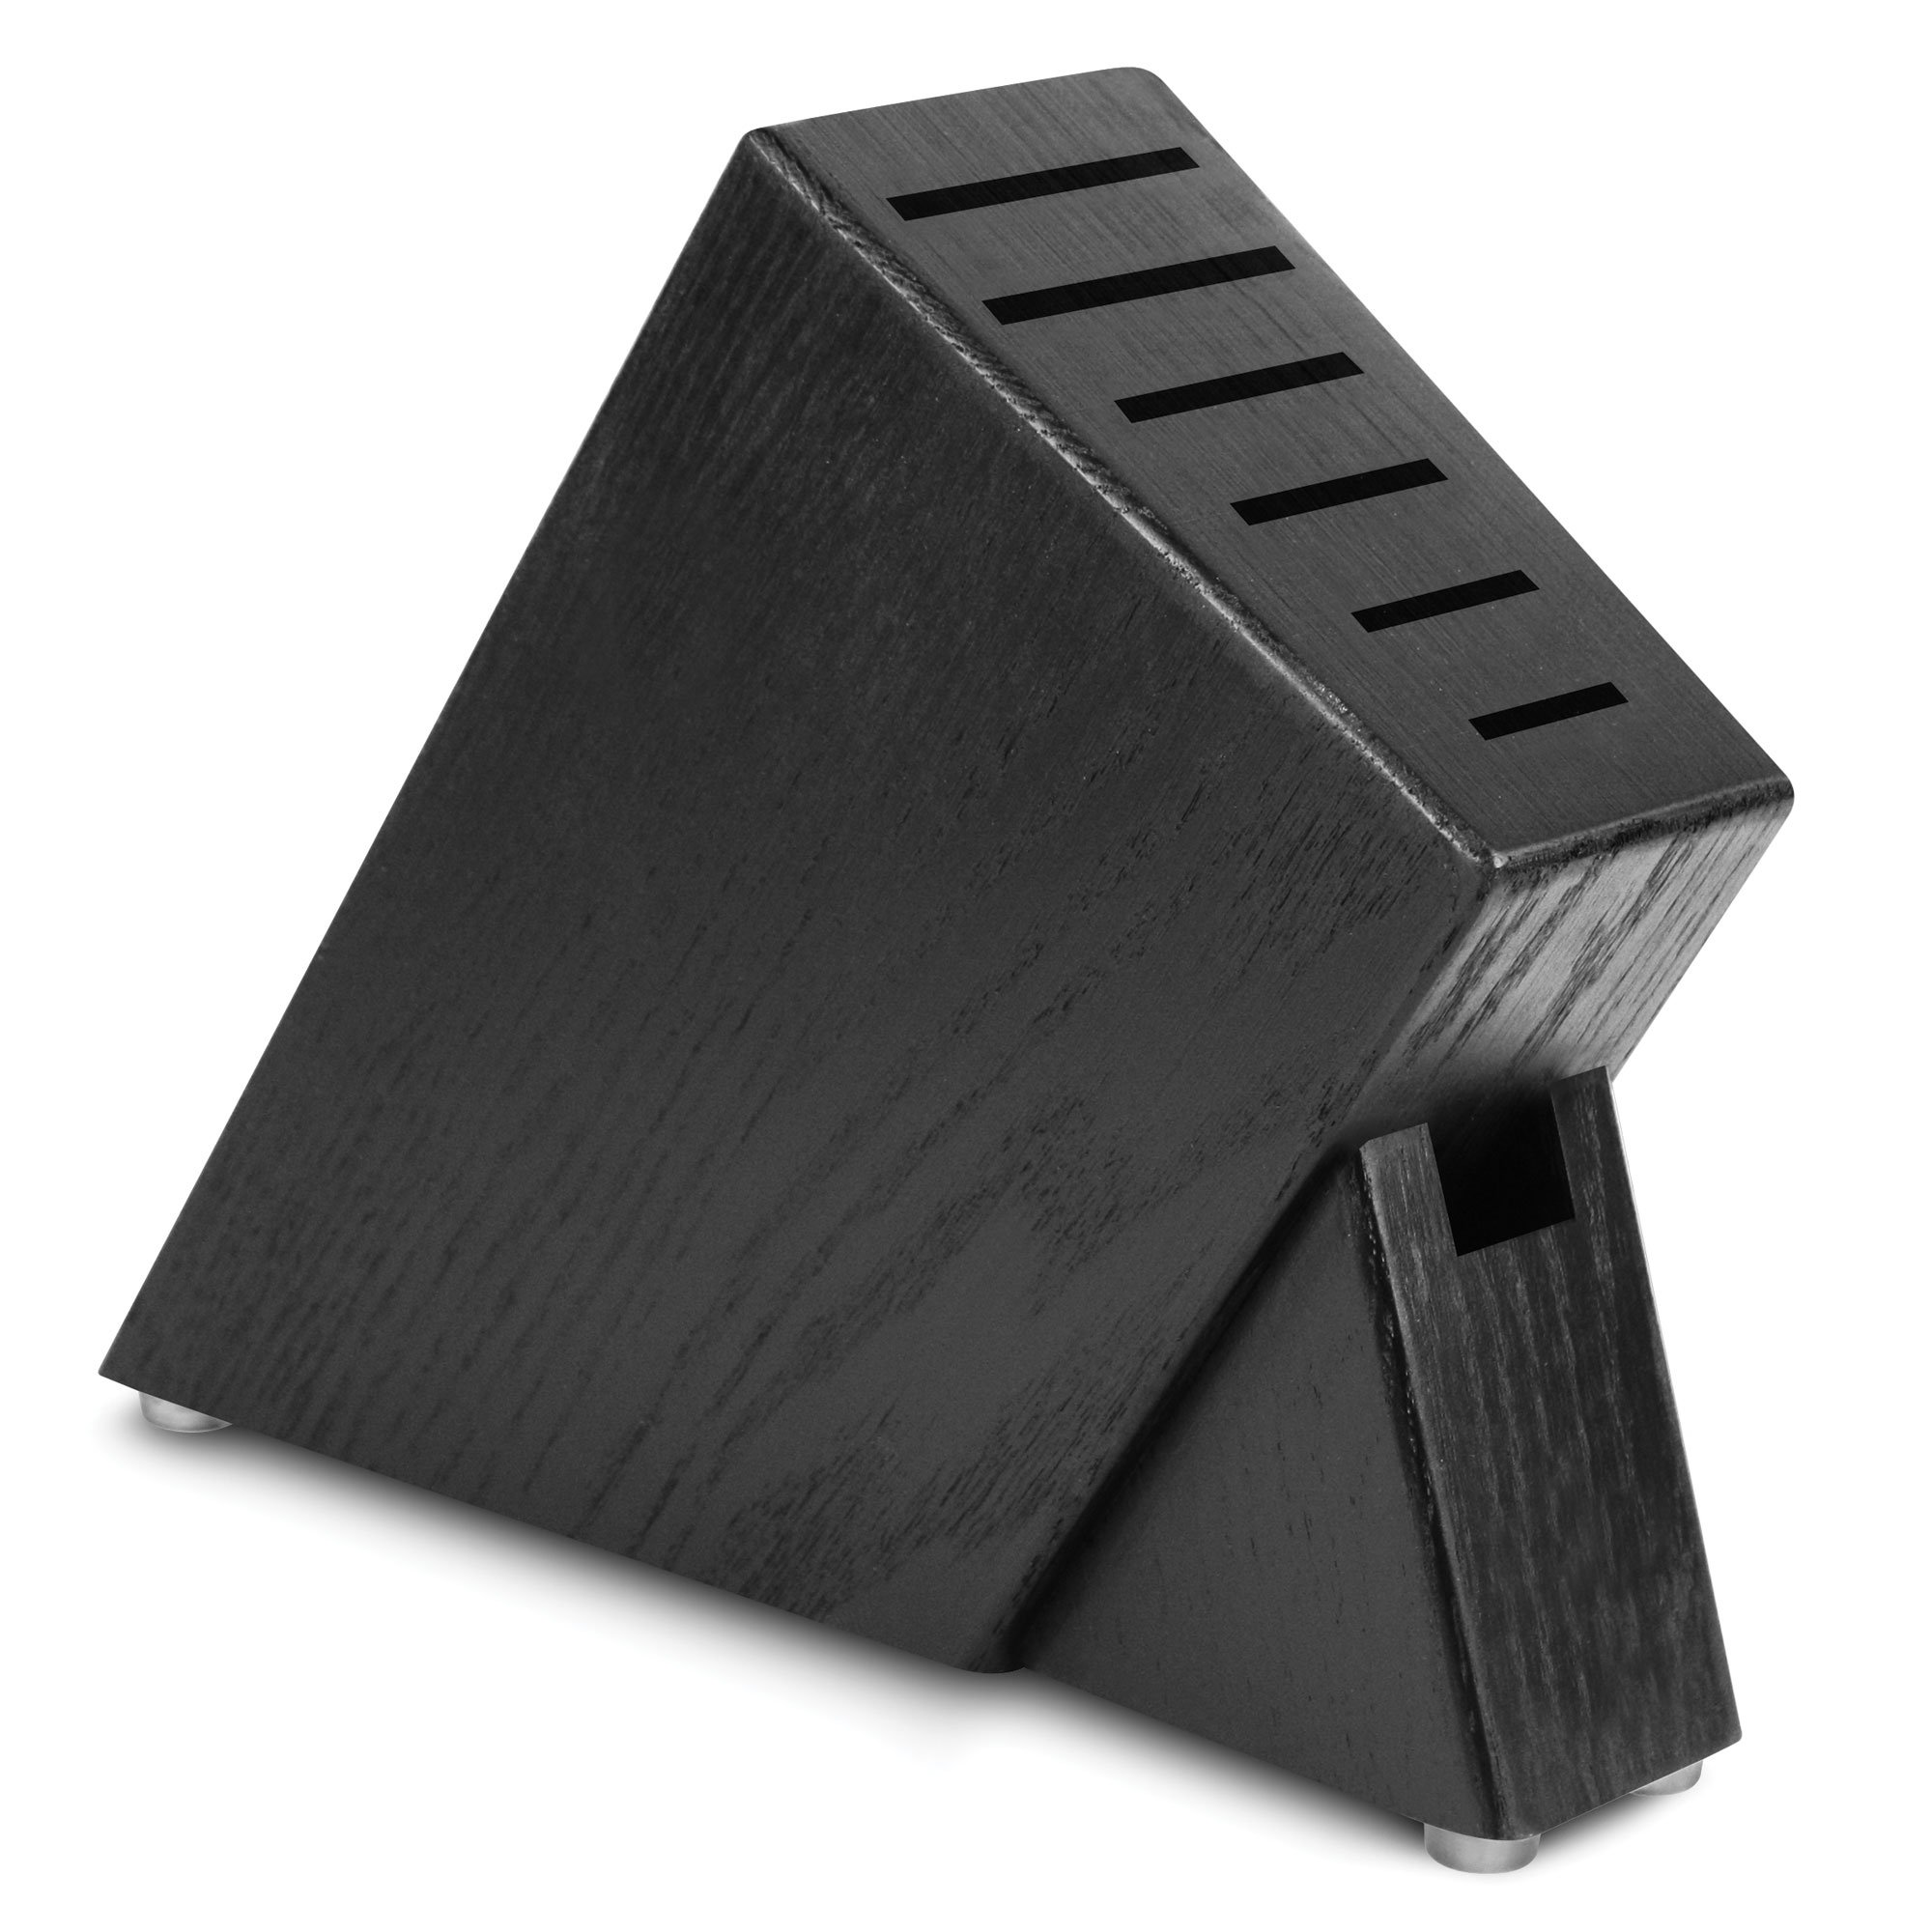 Cutlery and More 7-slot Slim Knife Block (Black)